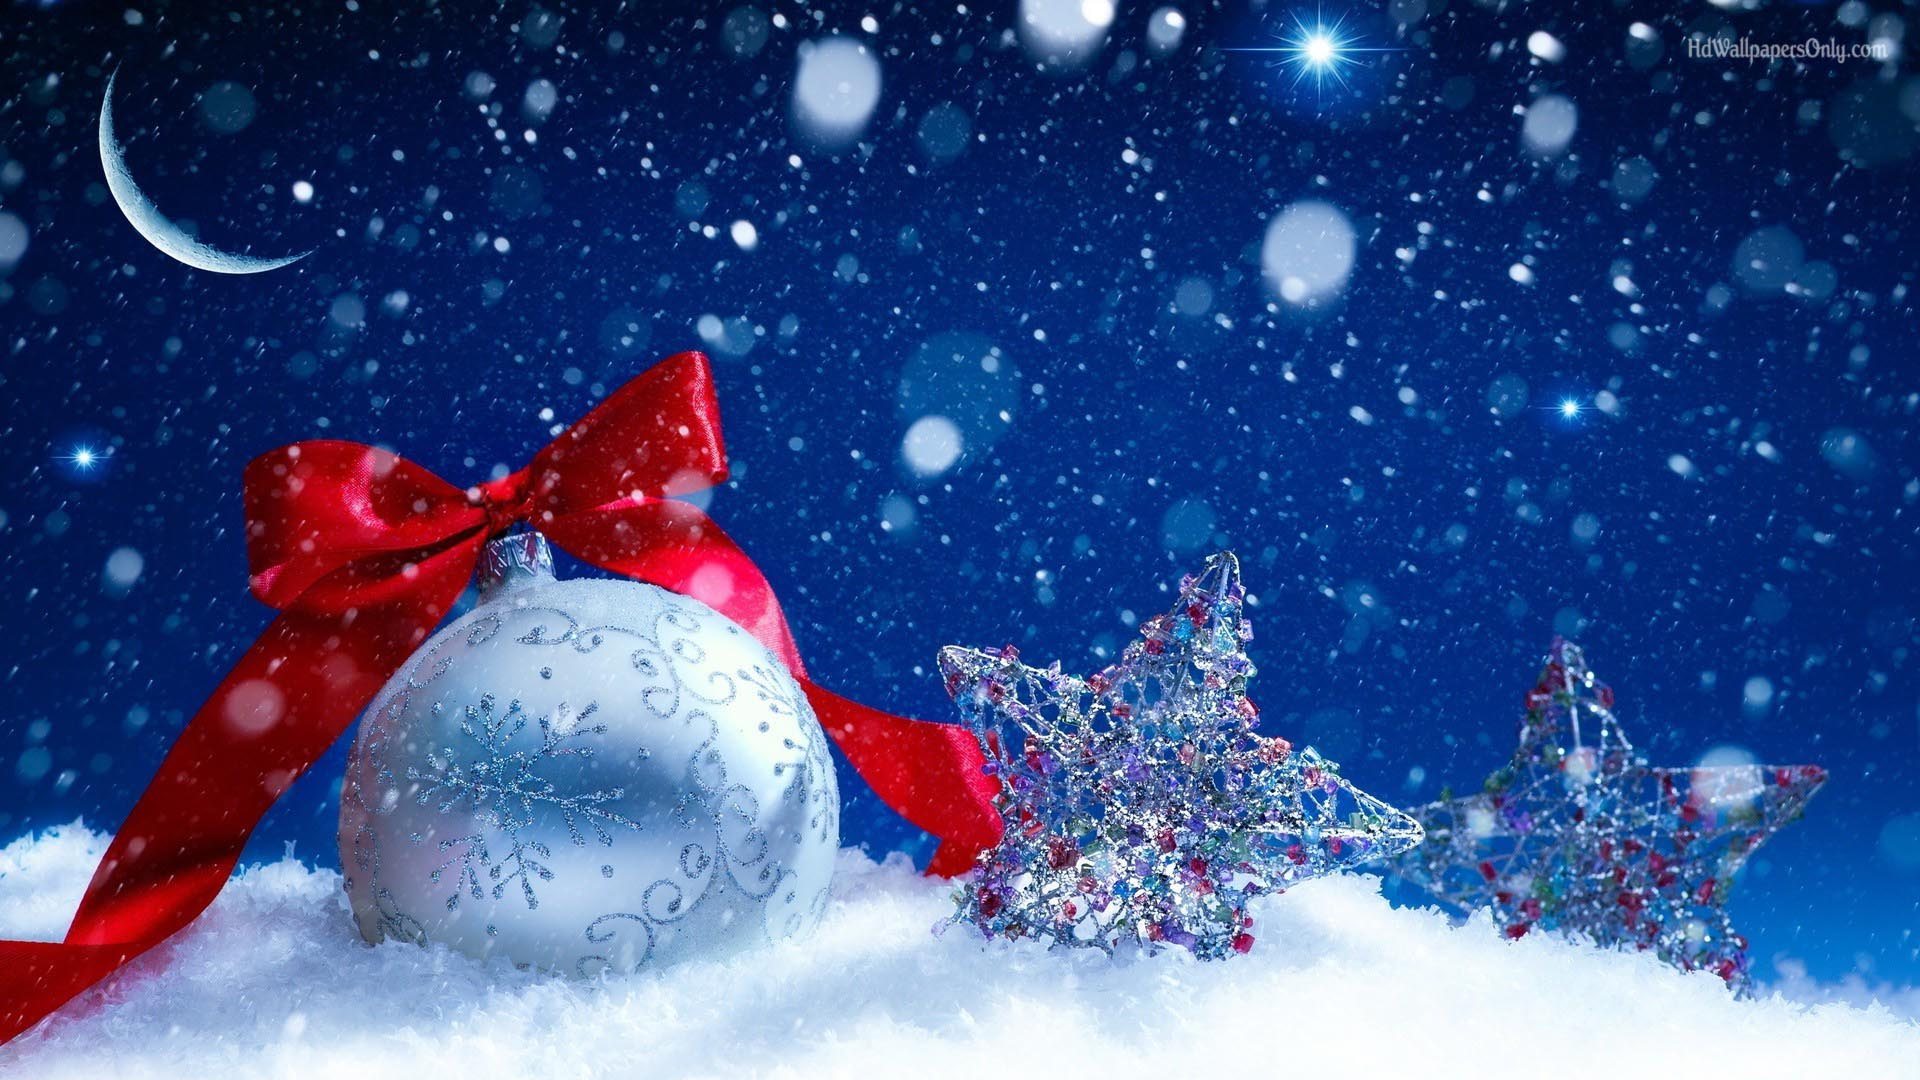 Christmas In July Background Images.Christmas In July